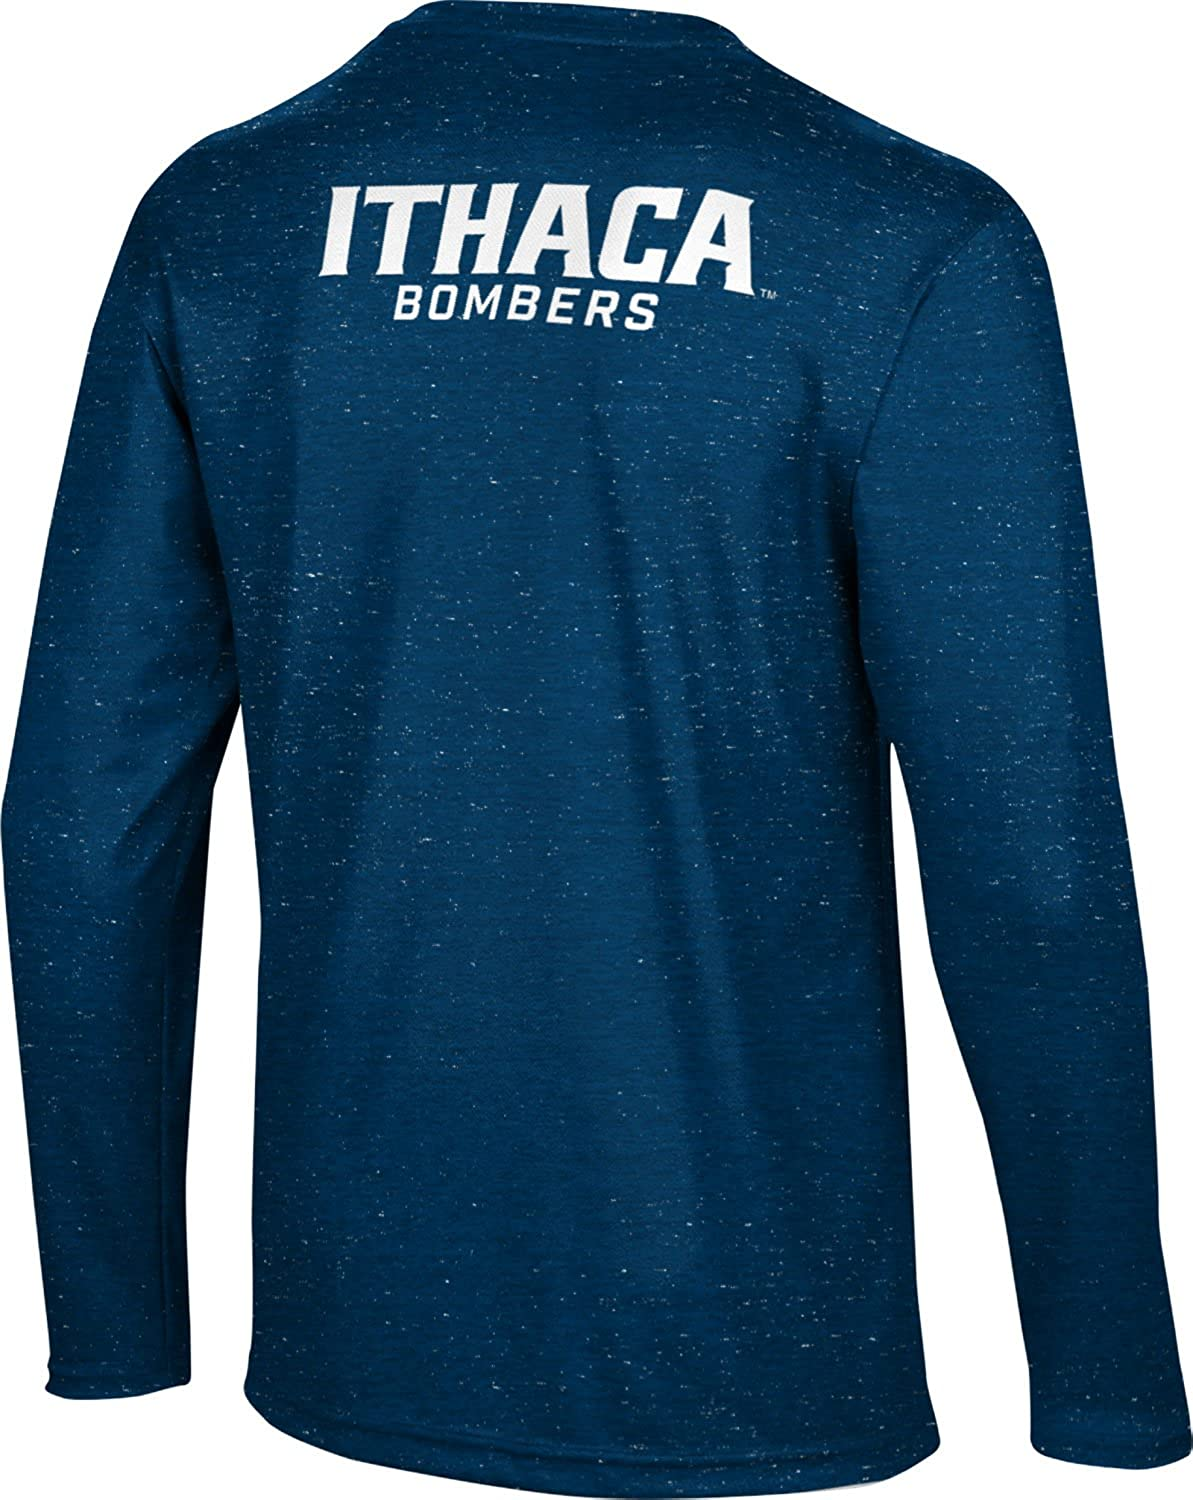 Large ProSphere Mens Ithaca College Classic Sublimated Socks